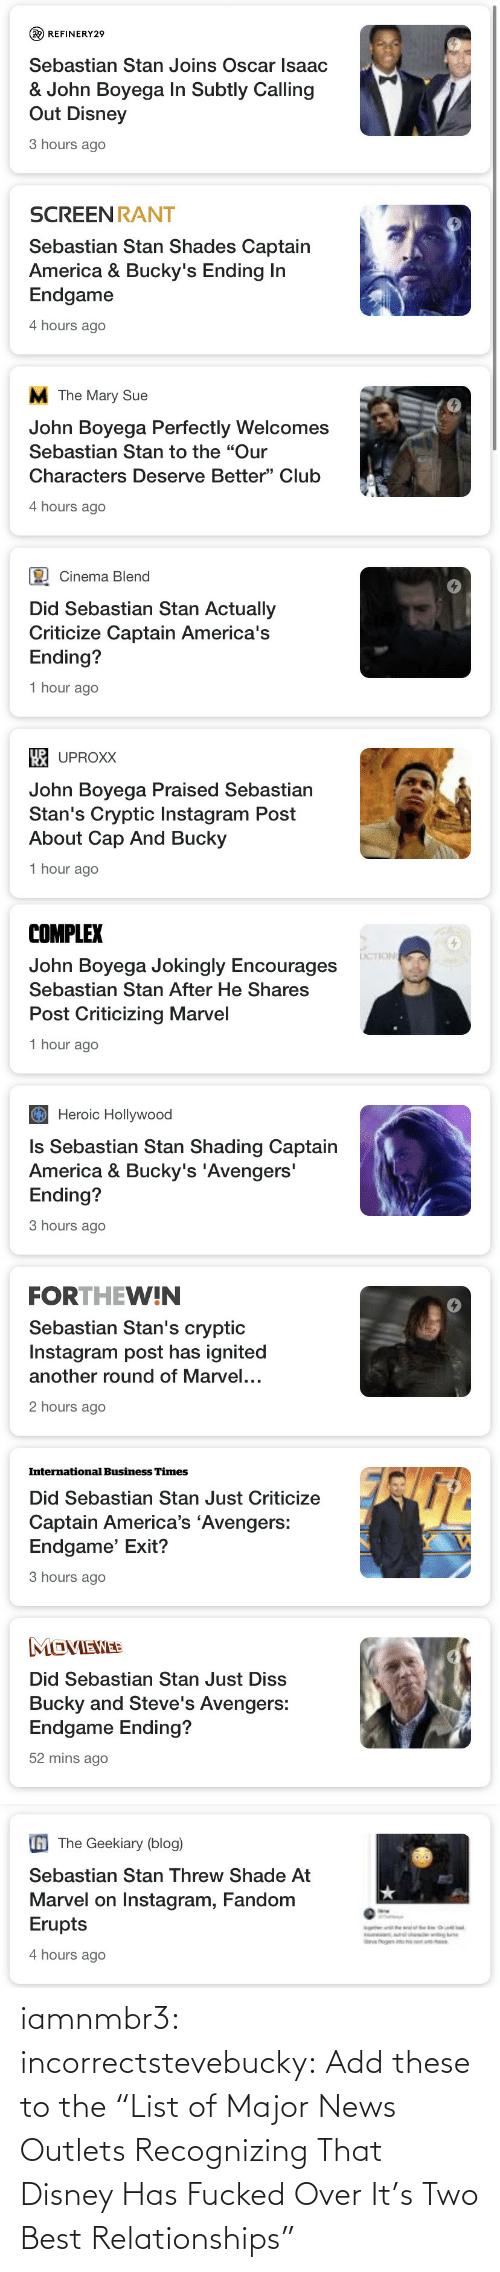 "Disney: iamnmbr3:  incorrectstevebucky: Add these to the ""List of Major News Outlets Recognizing That Disney Has Fucked Over It's Two Best Relationships"""